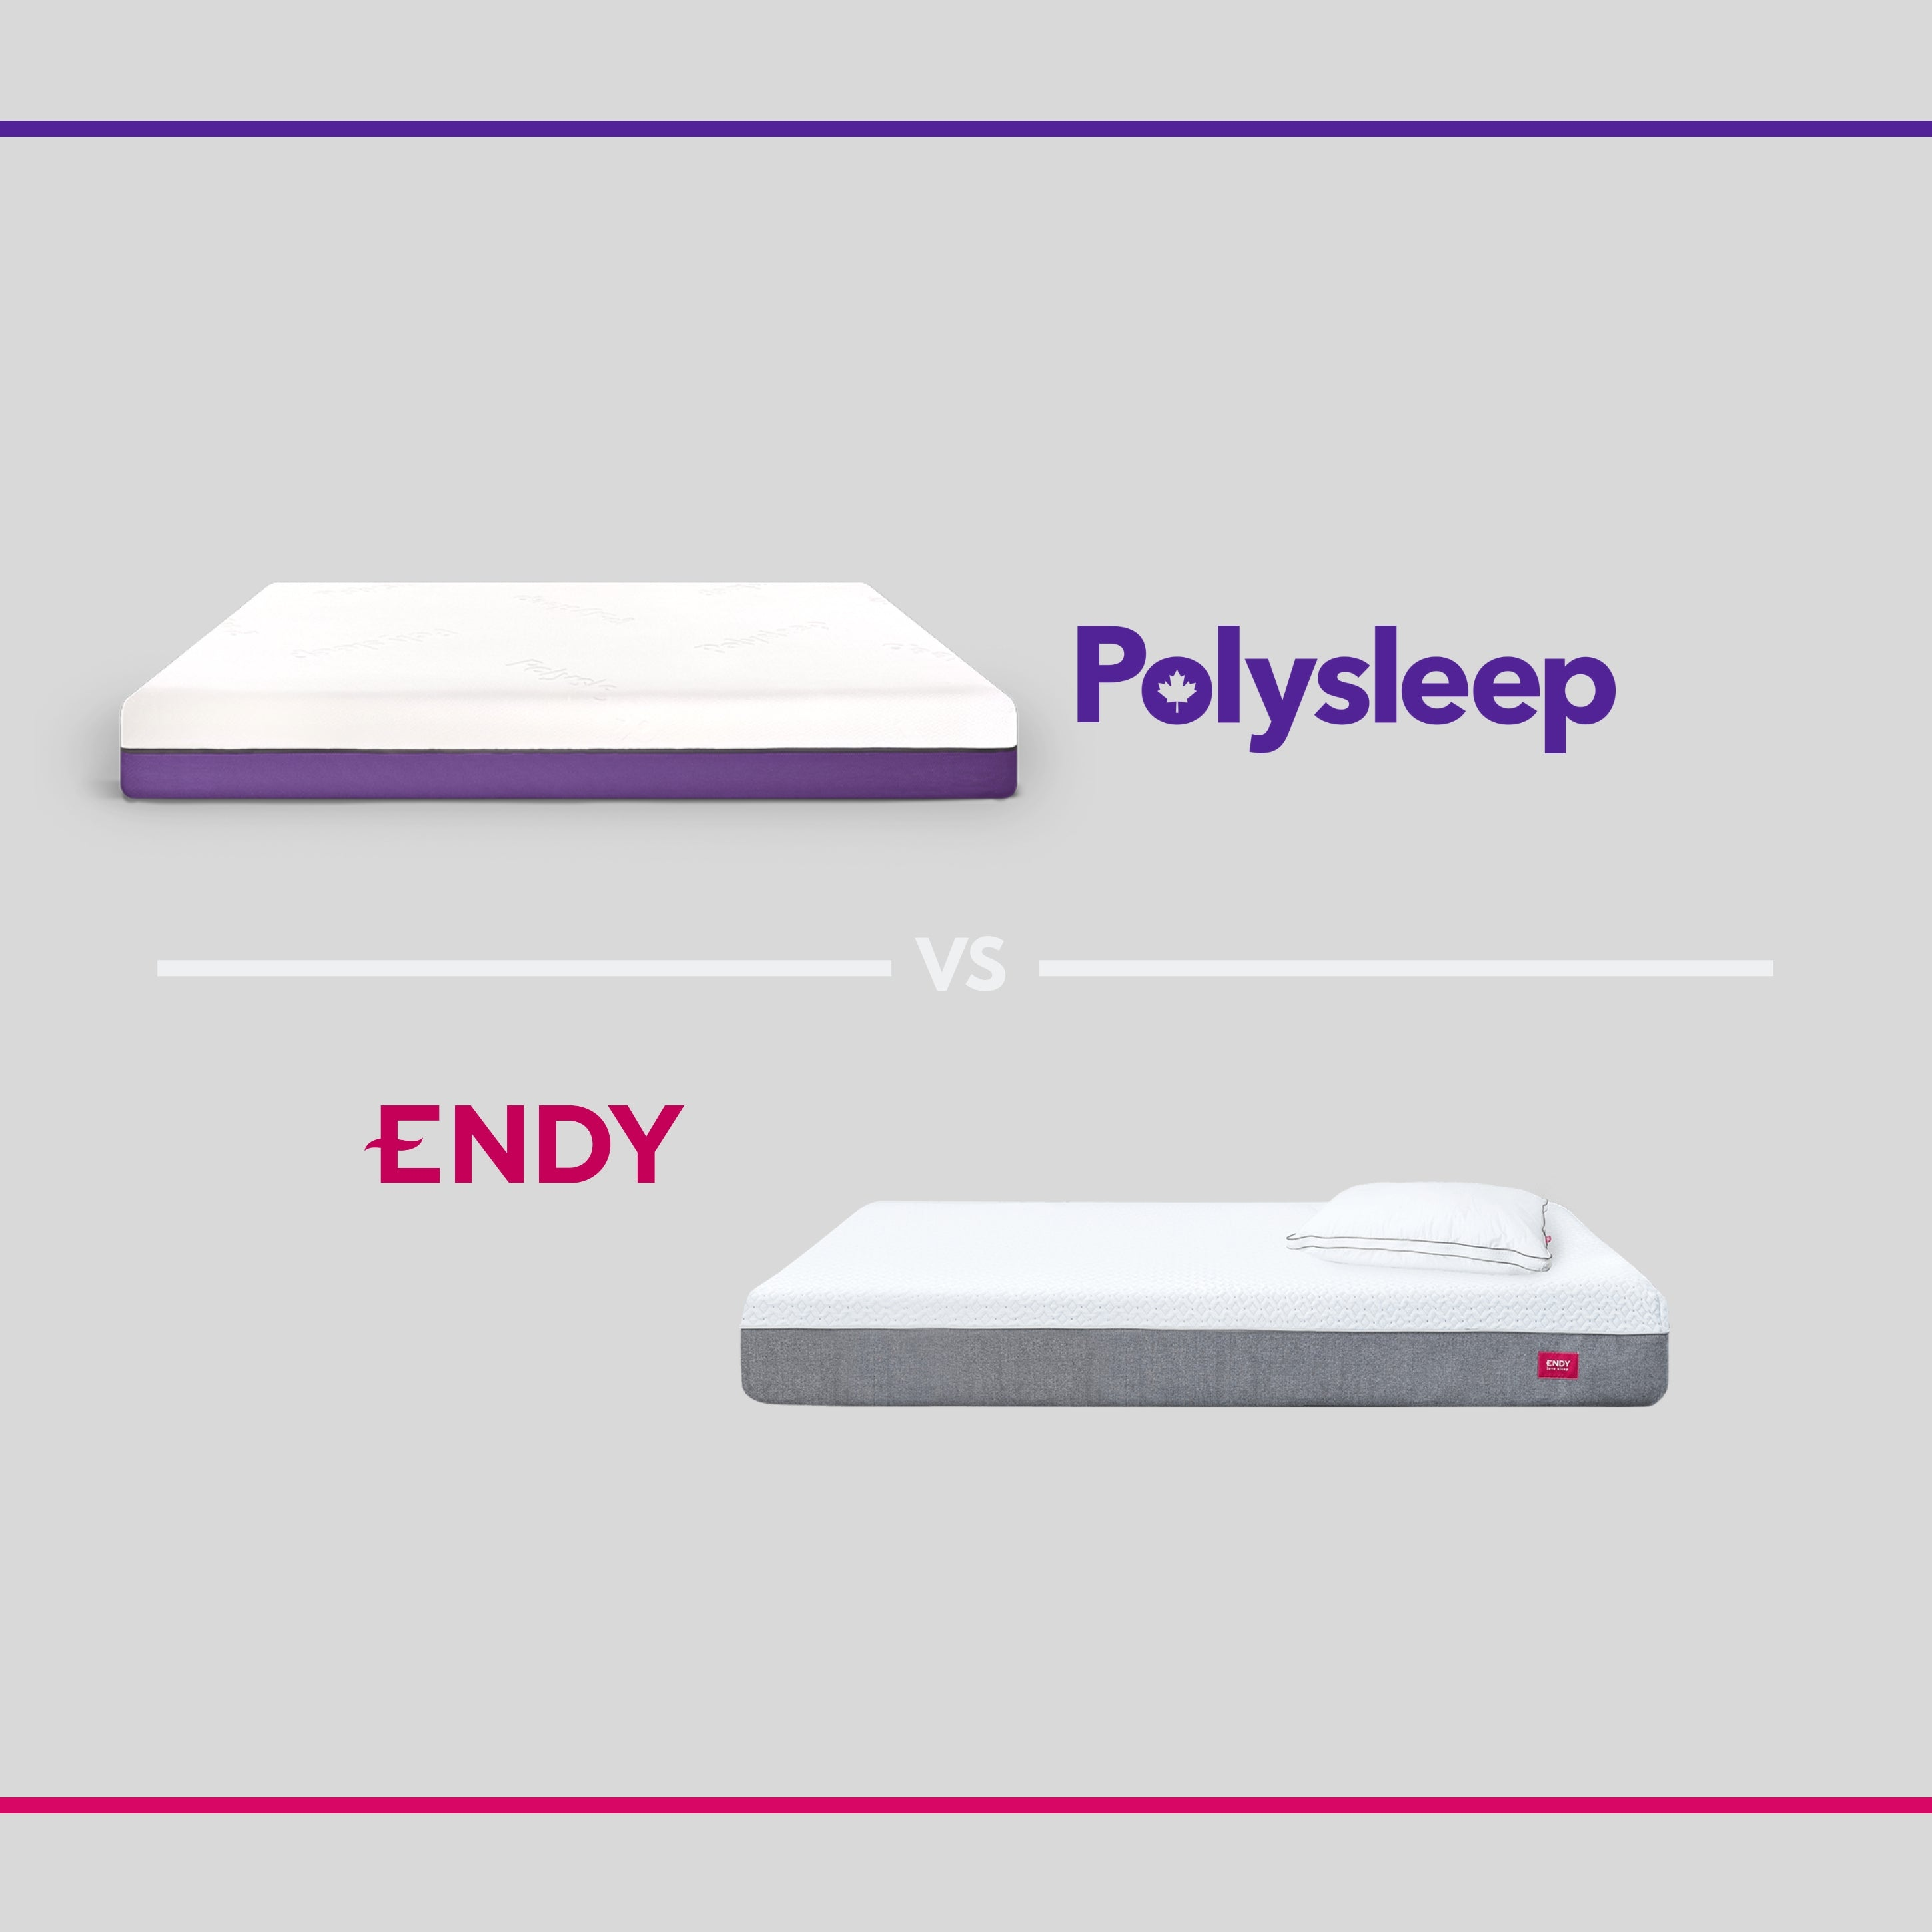 Illsutration of the Endy mattress and the Polysleep mattress